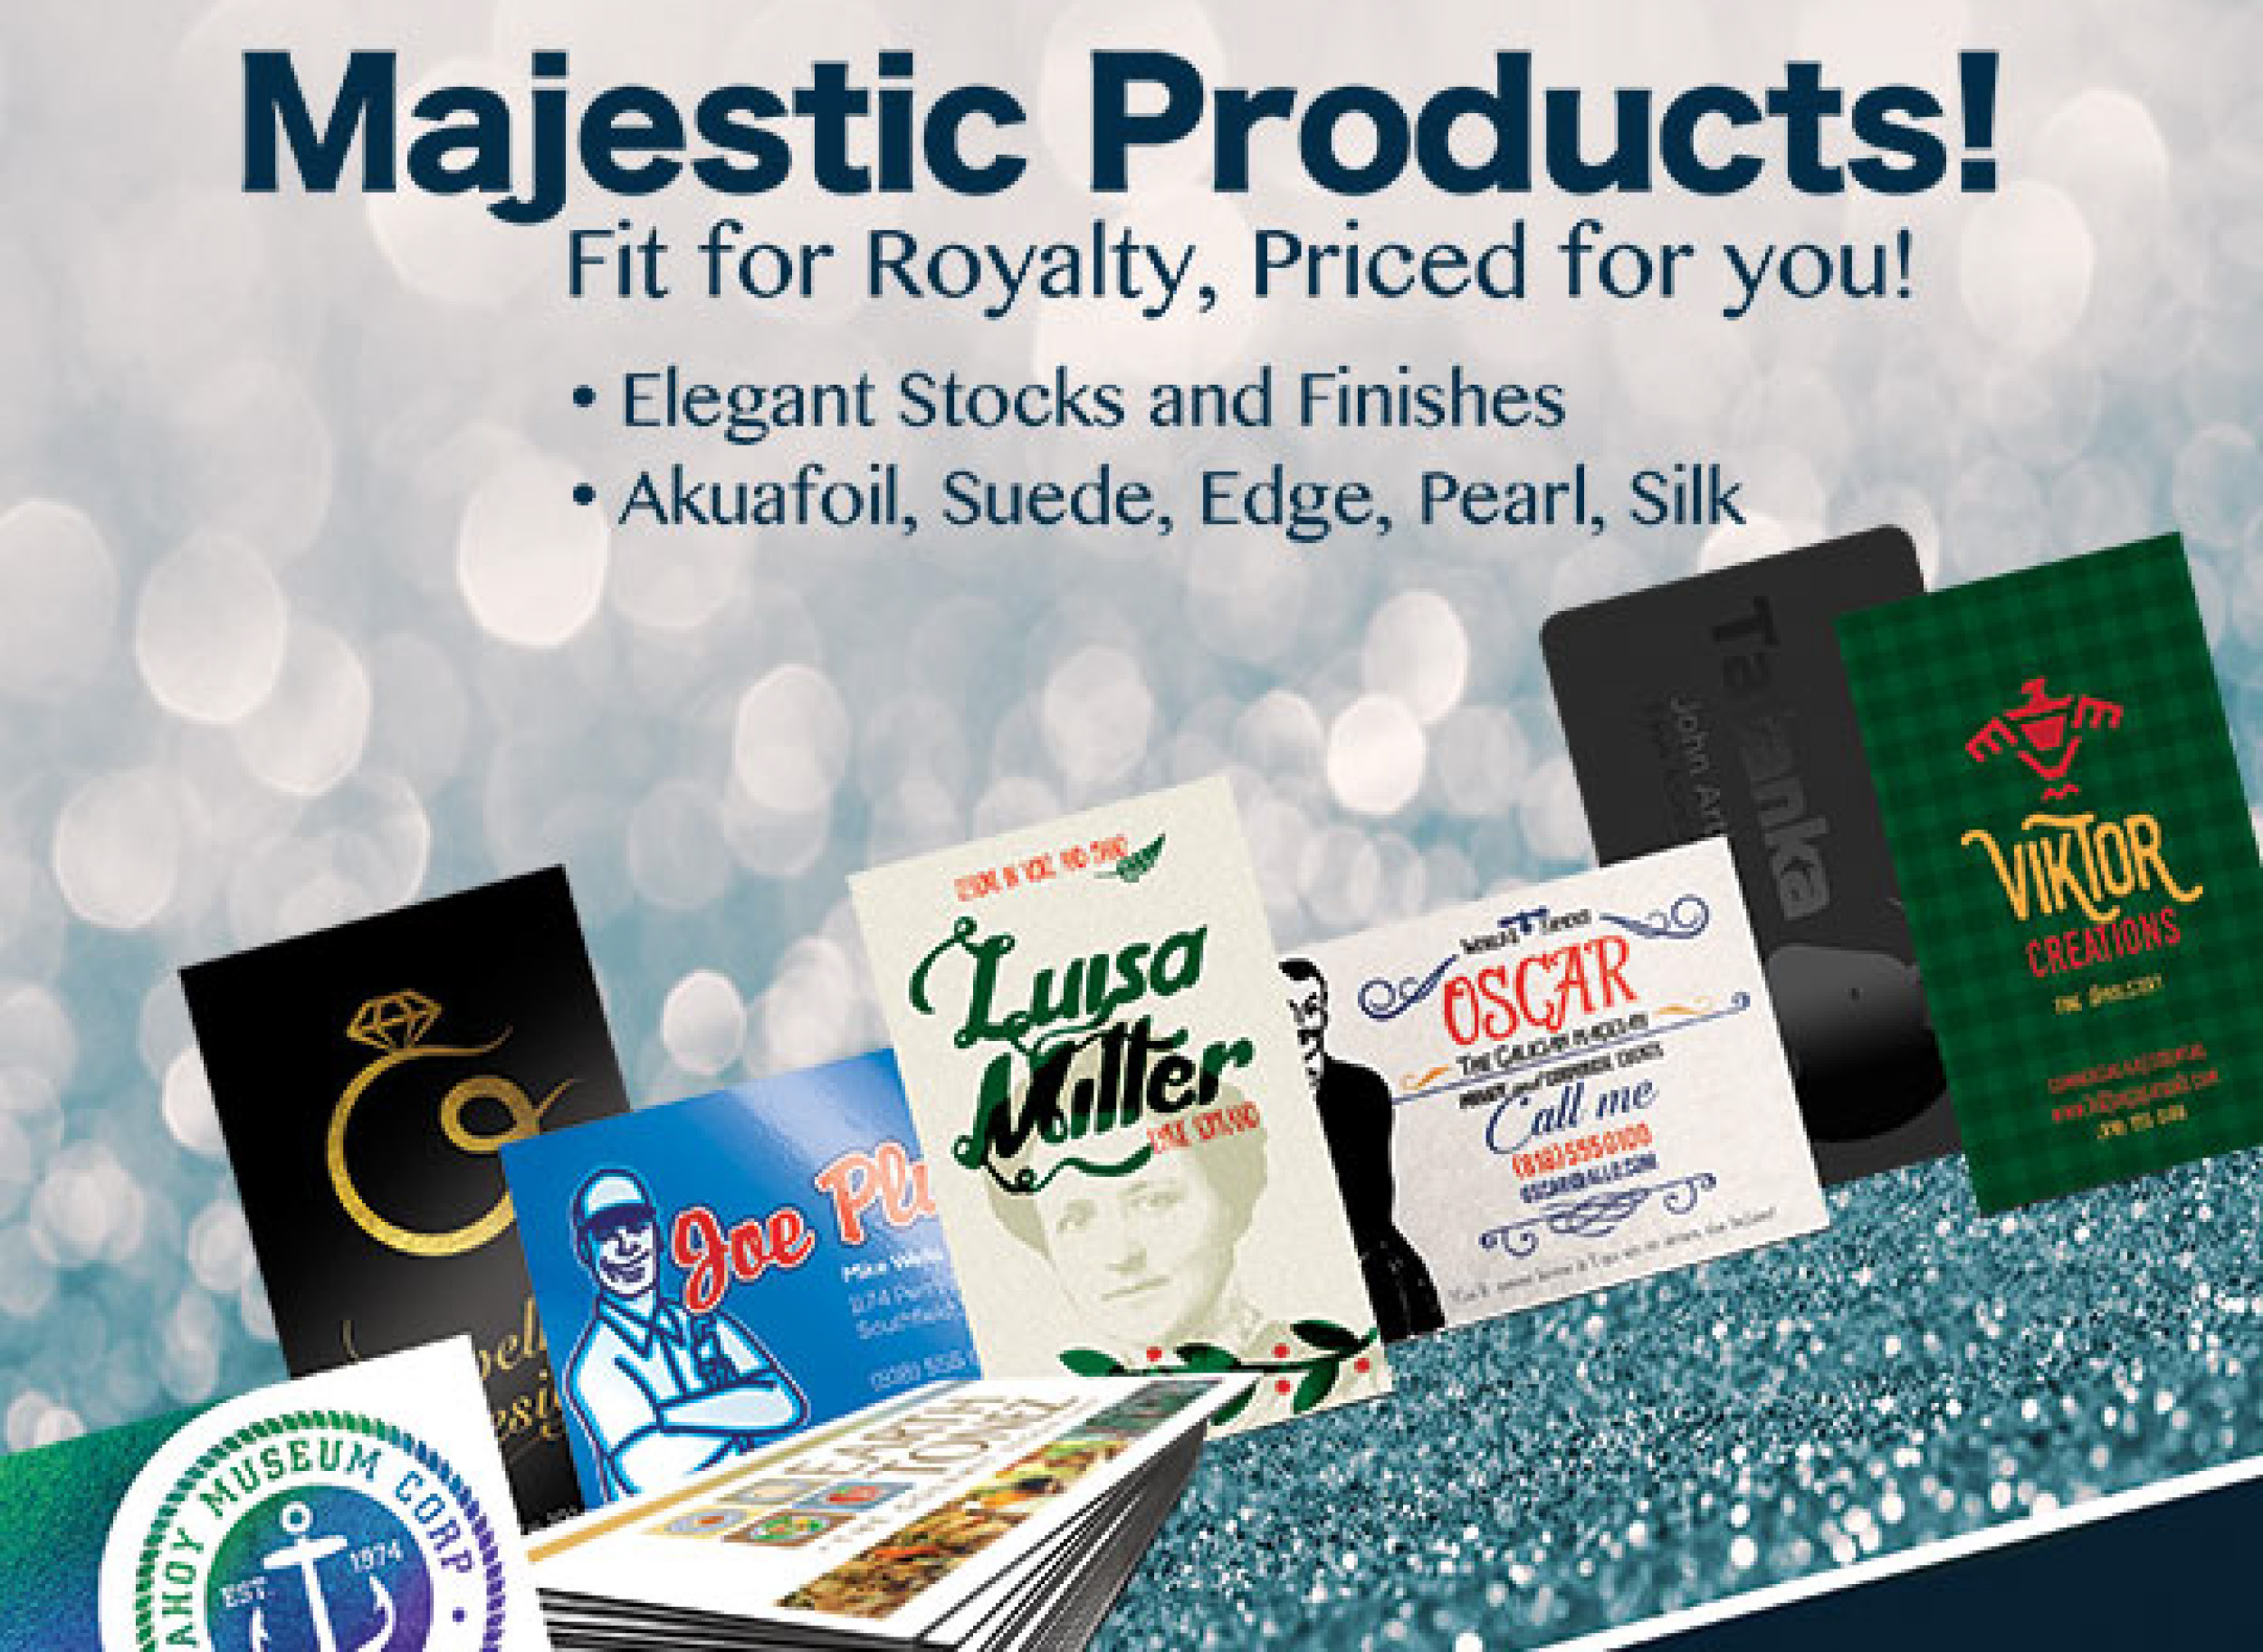 Majestic Products